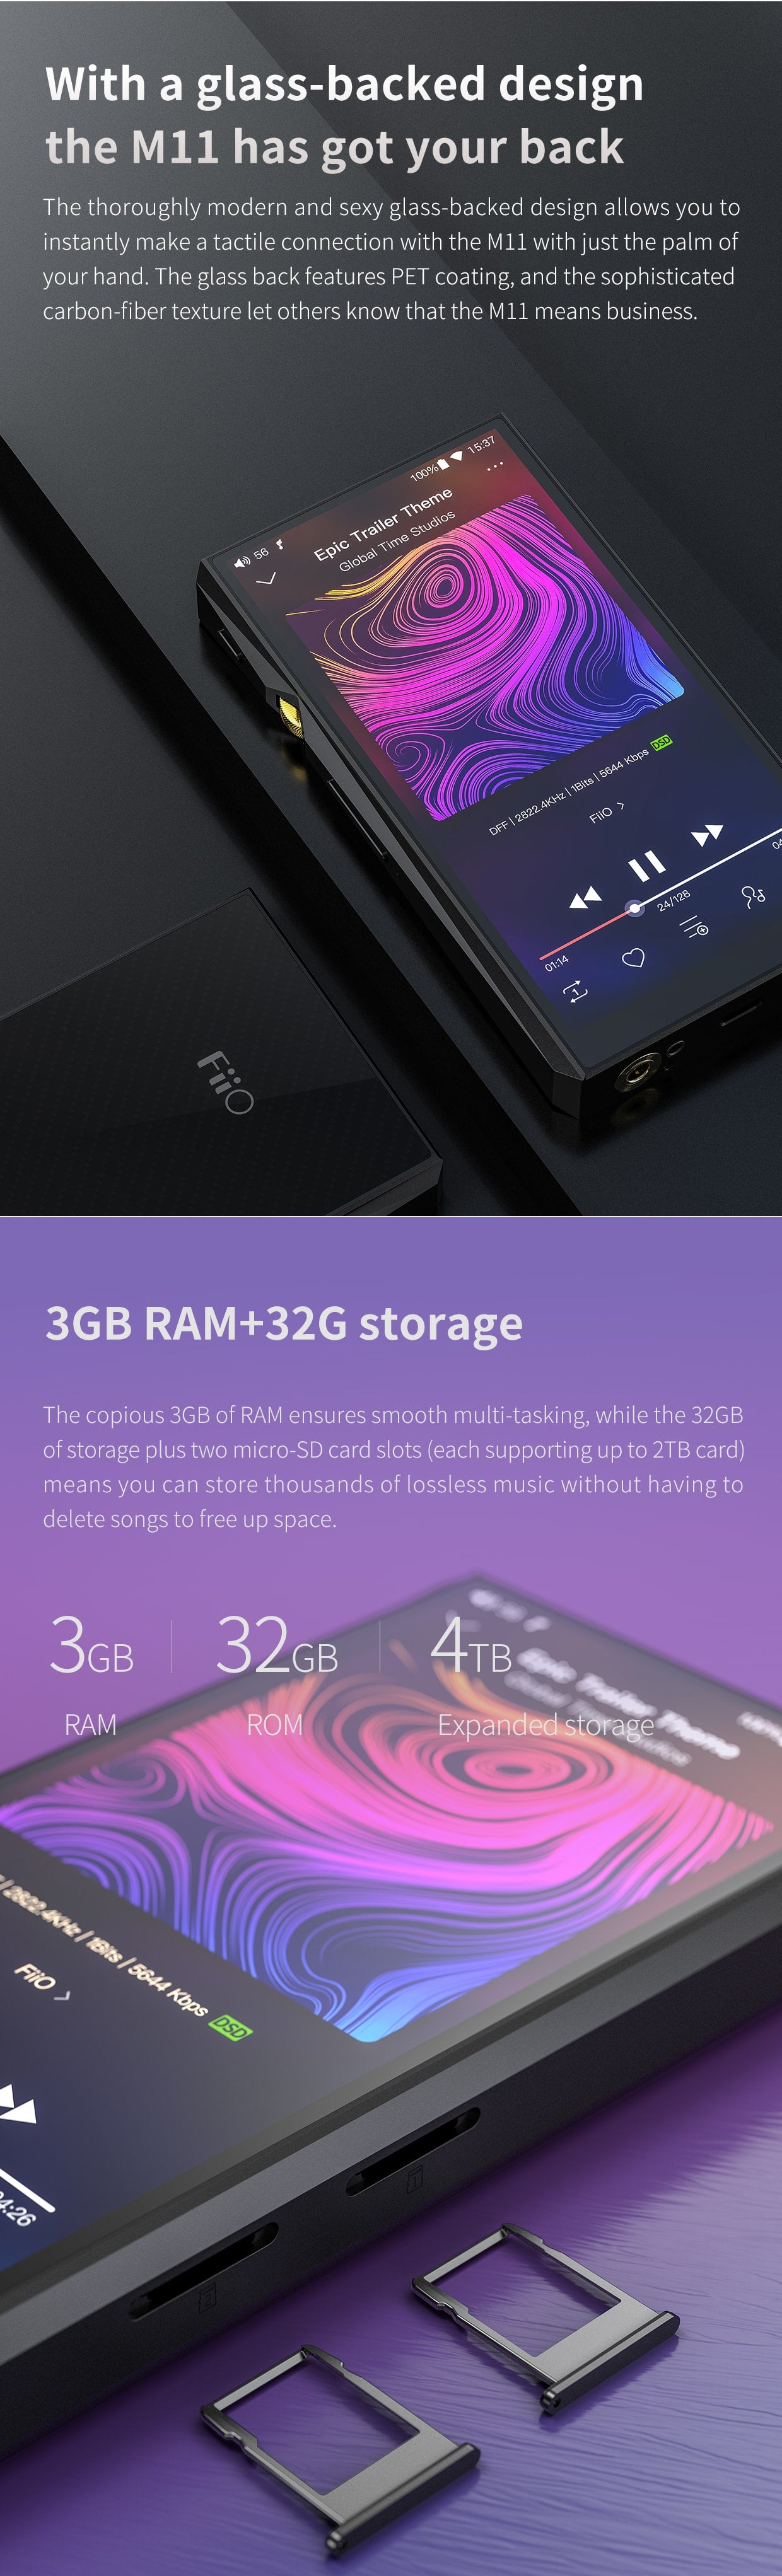 FiiO M11 Portable High Resolution Audio Player